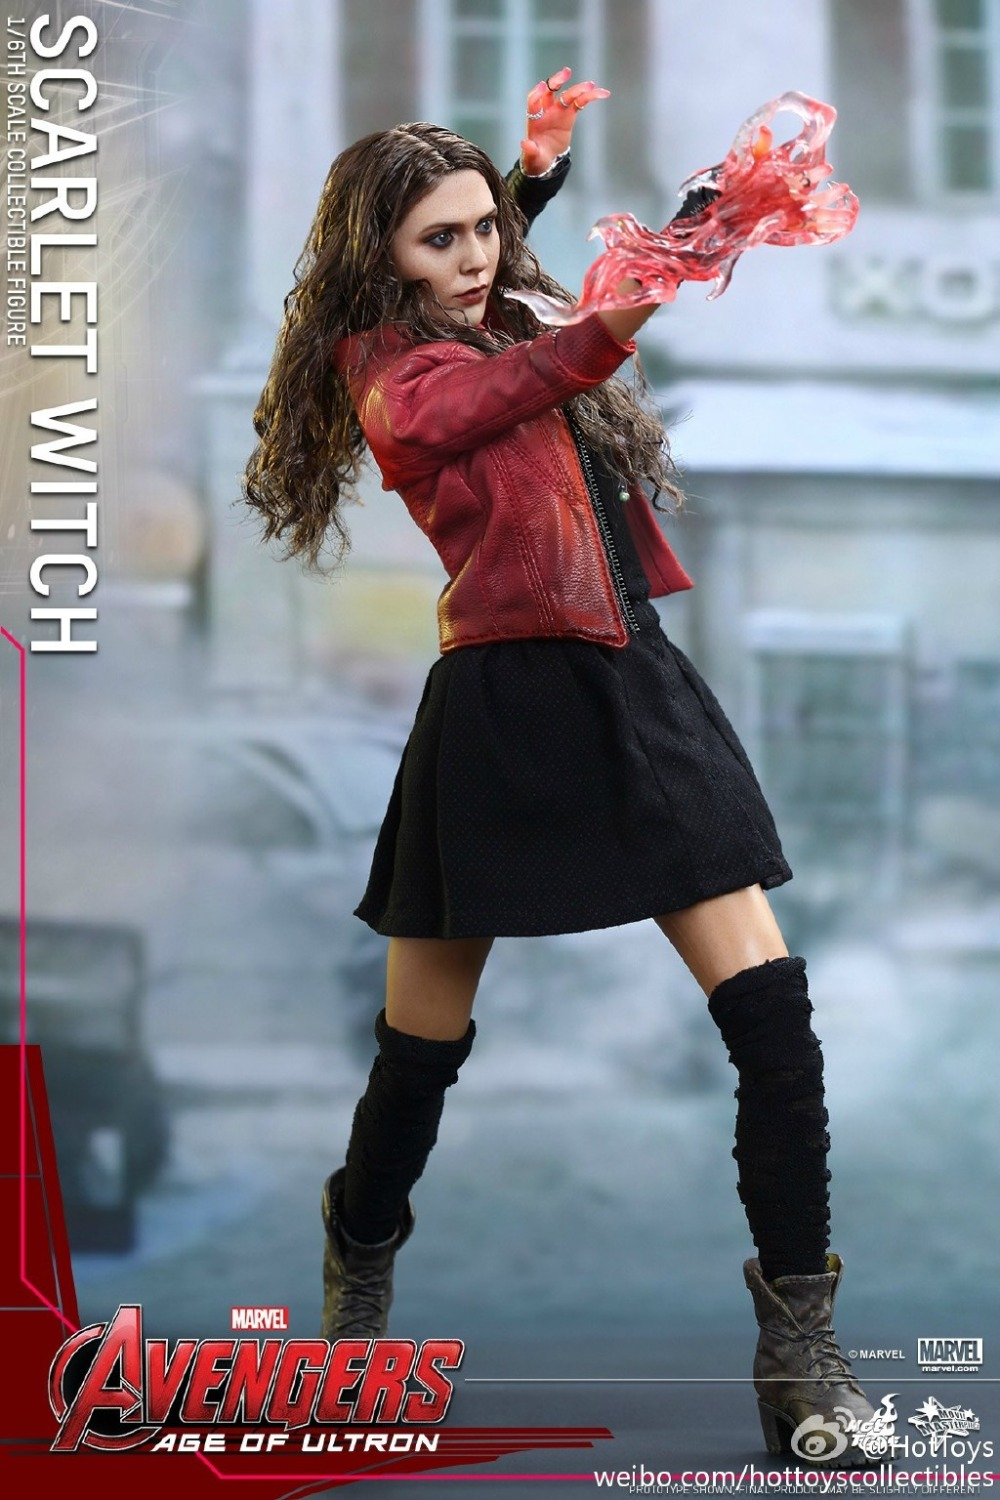 1/6 scale Collectible figure doll Avengers: Age of Ultron Scarlet Witch 12 action figures doll Plastic Model Toys 1 6 scale figure captain america civil war or avengers ii scarlet witch 12 action figure doll collectible model plastic toy